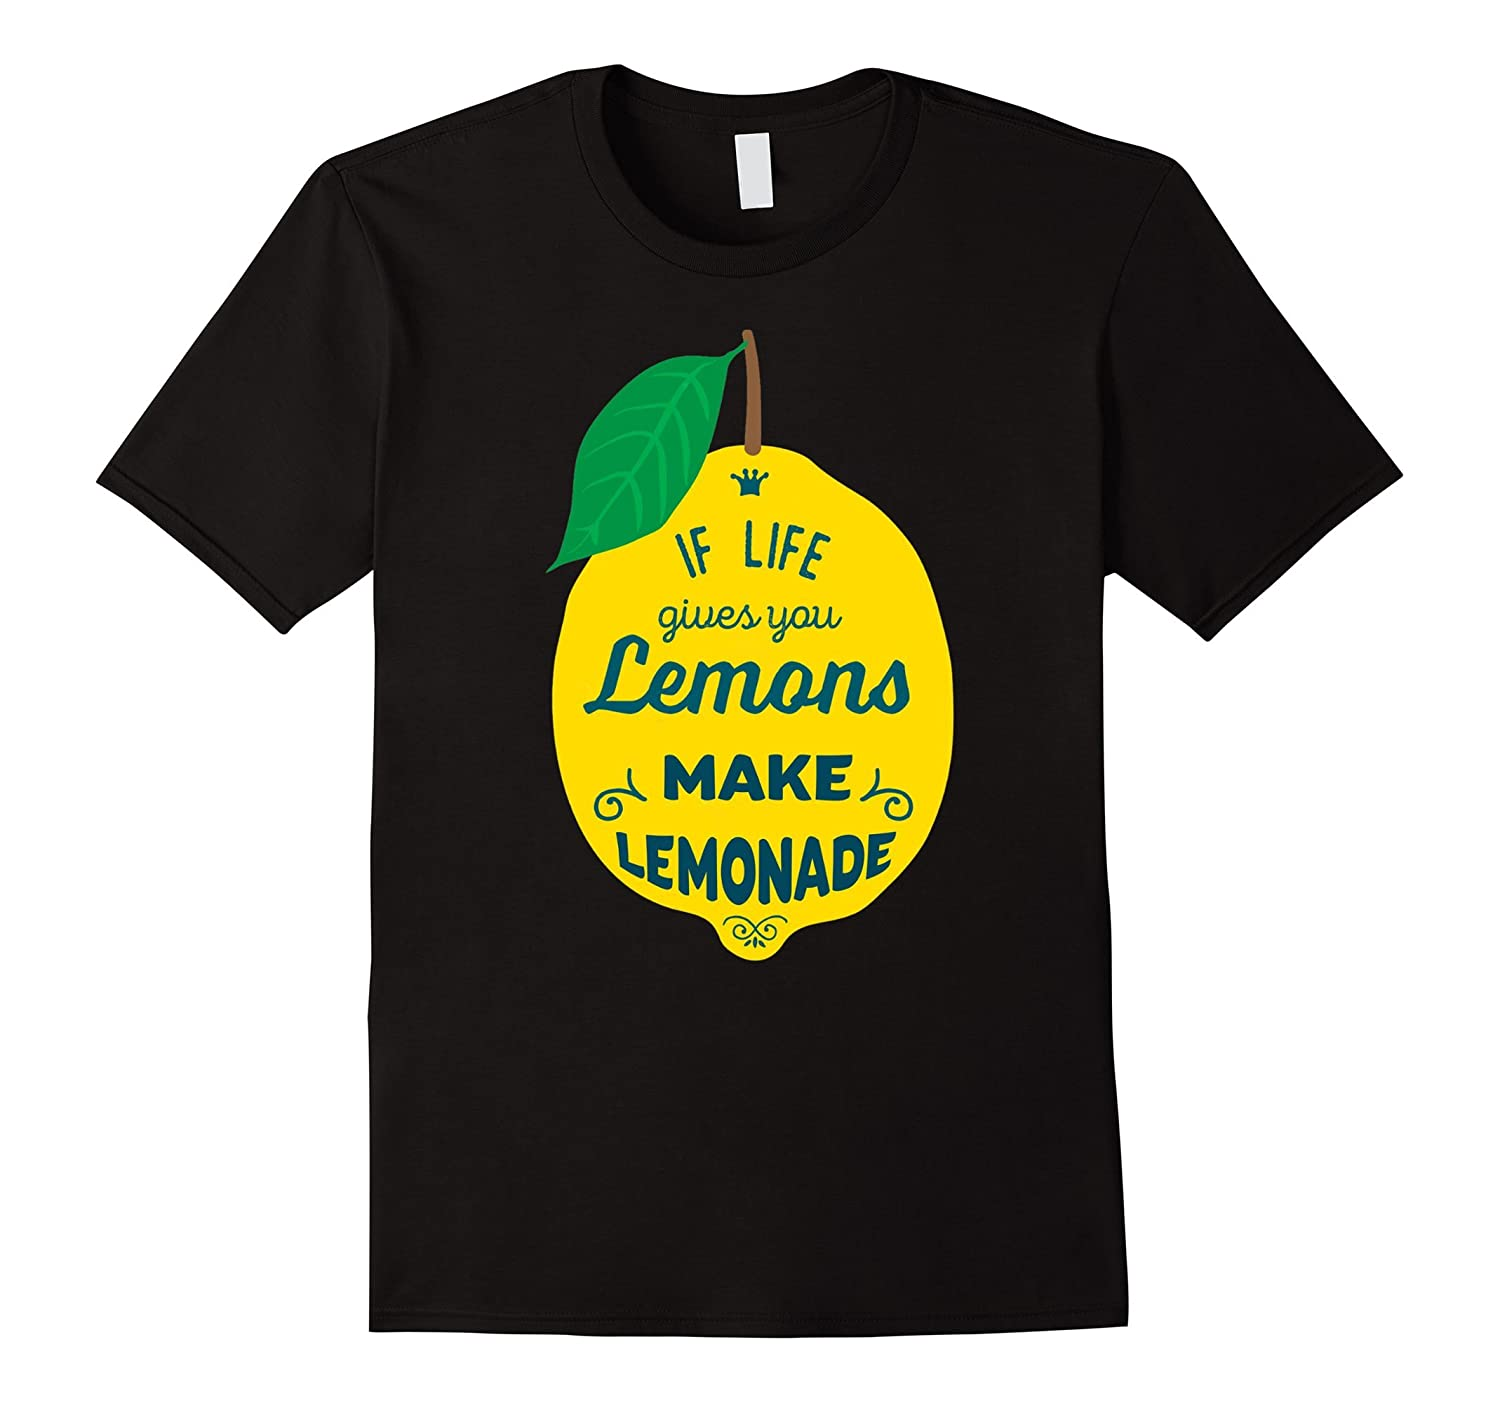 Lemonade Day T-Shirt - when life gives you lemons shirt-Vaci